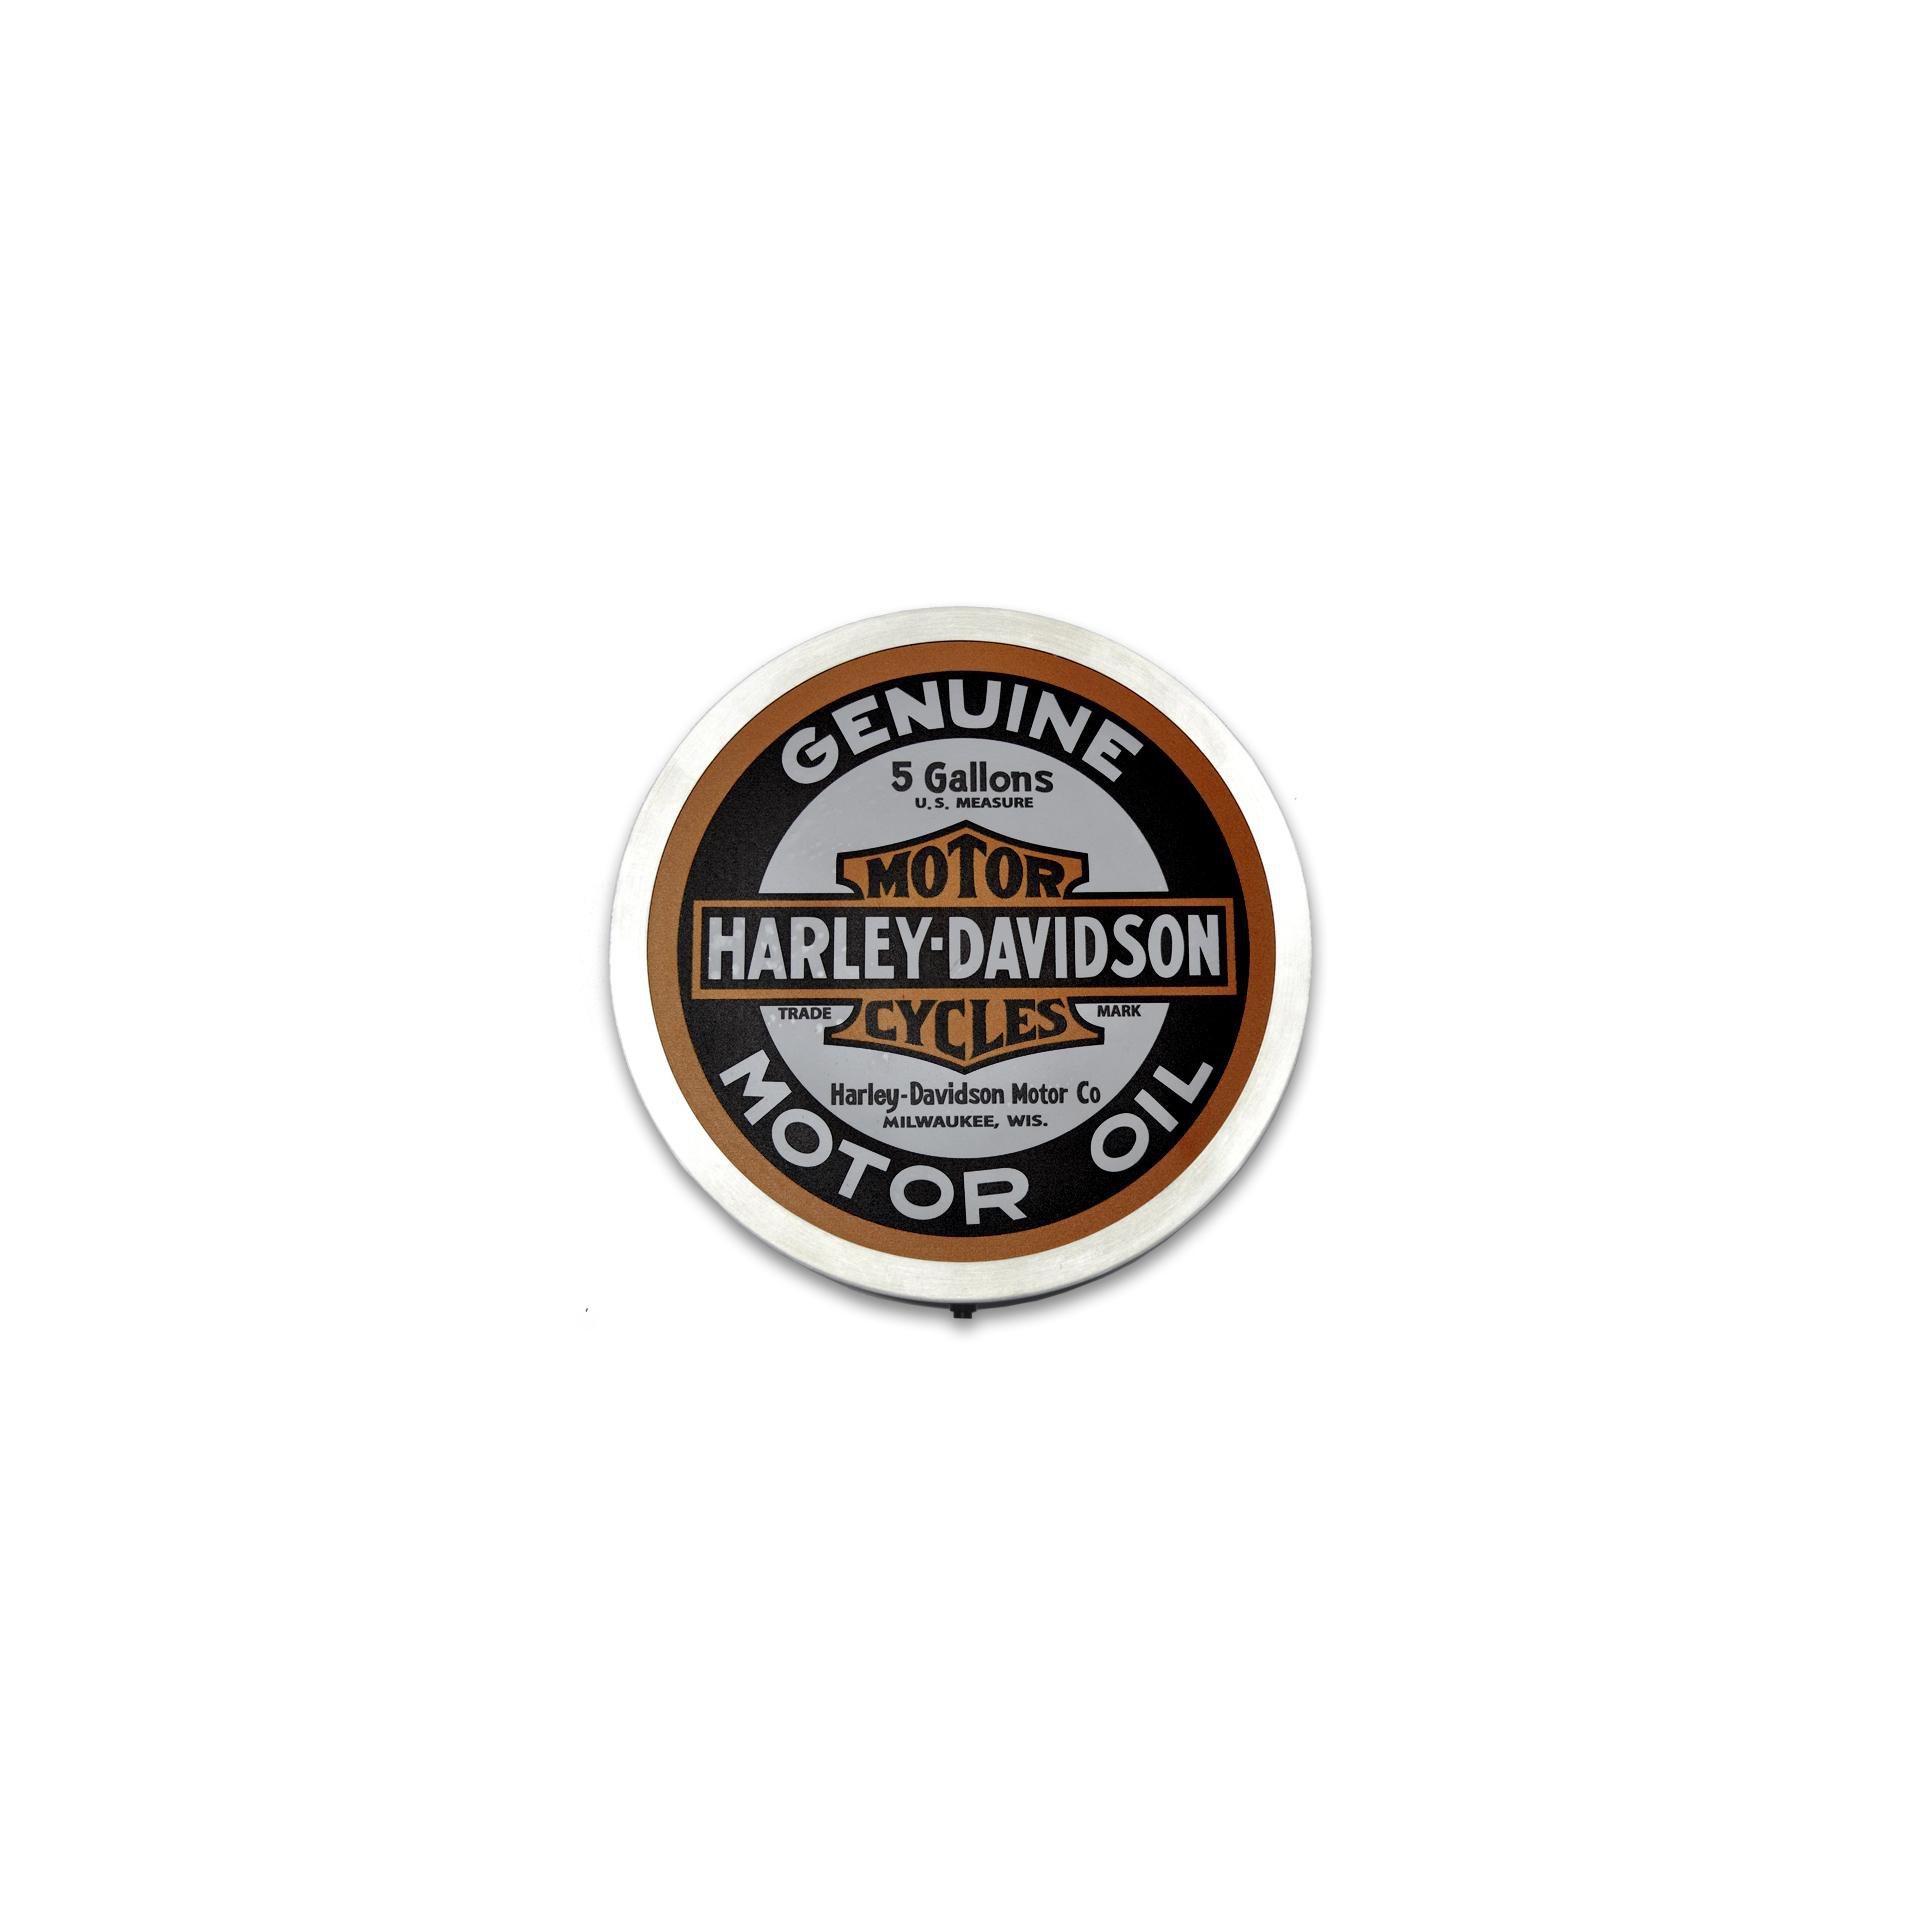 Luminoso Decorativo - Harley Davidson - 31 Cm